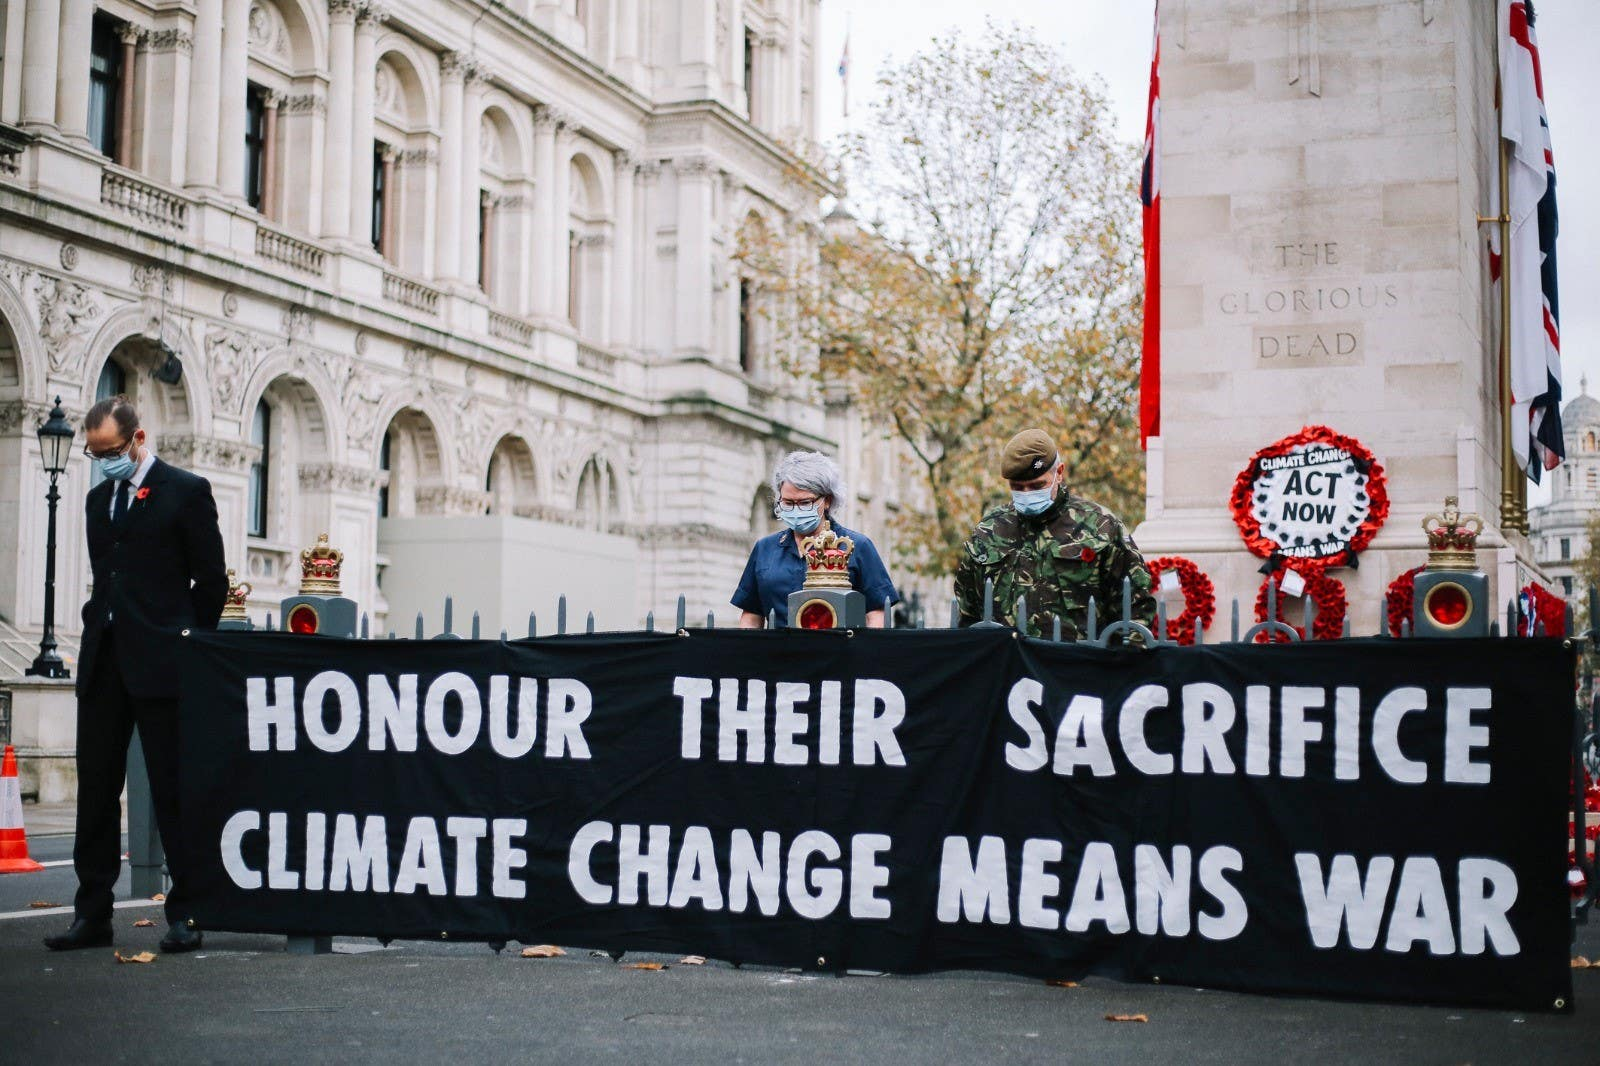 Extinction Rebellion in climate change protest at Cenotaph